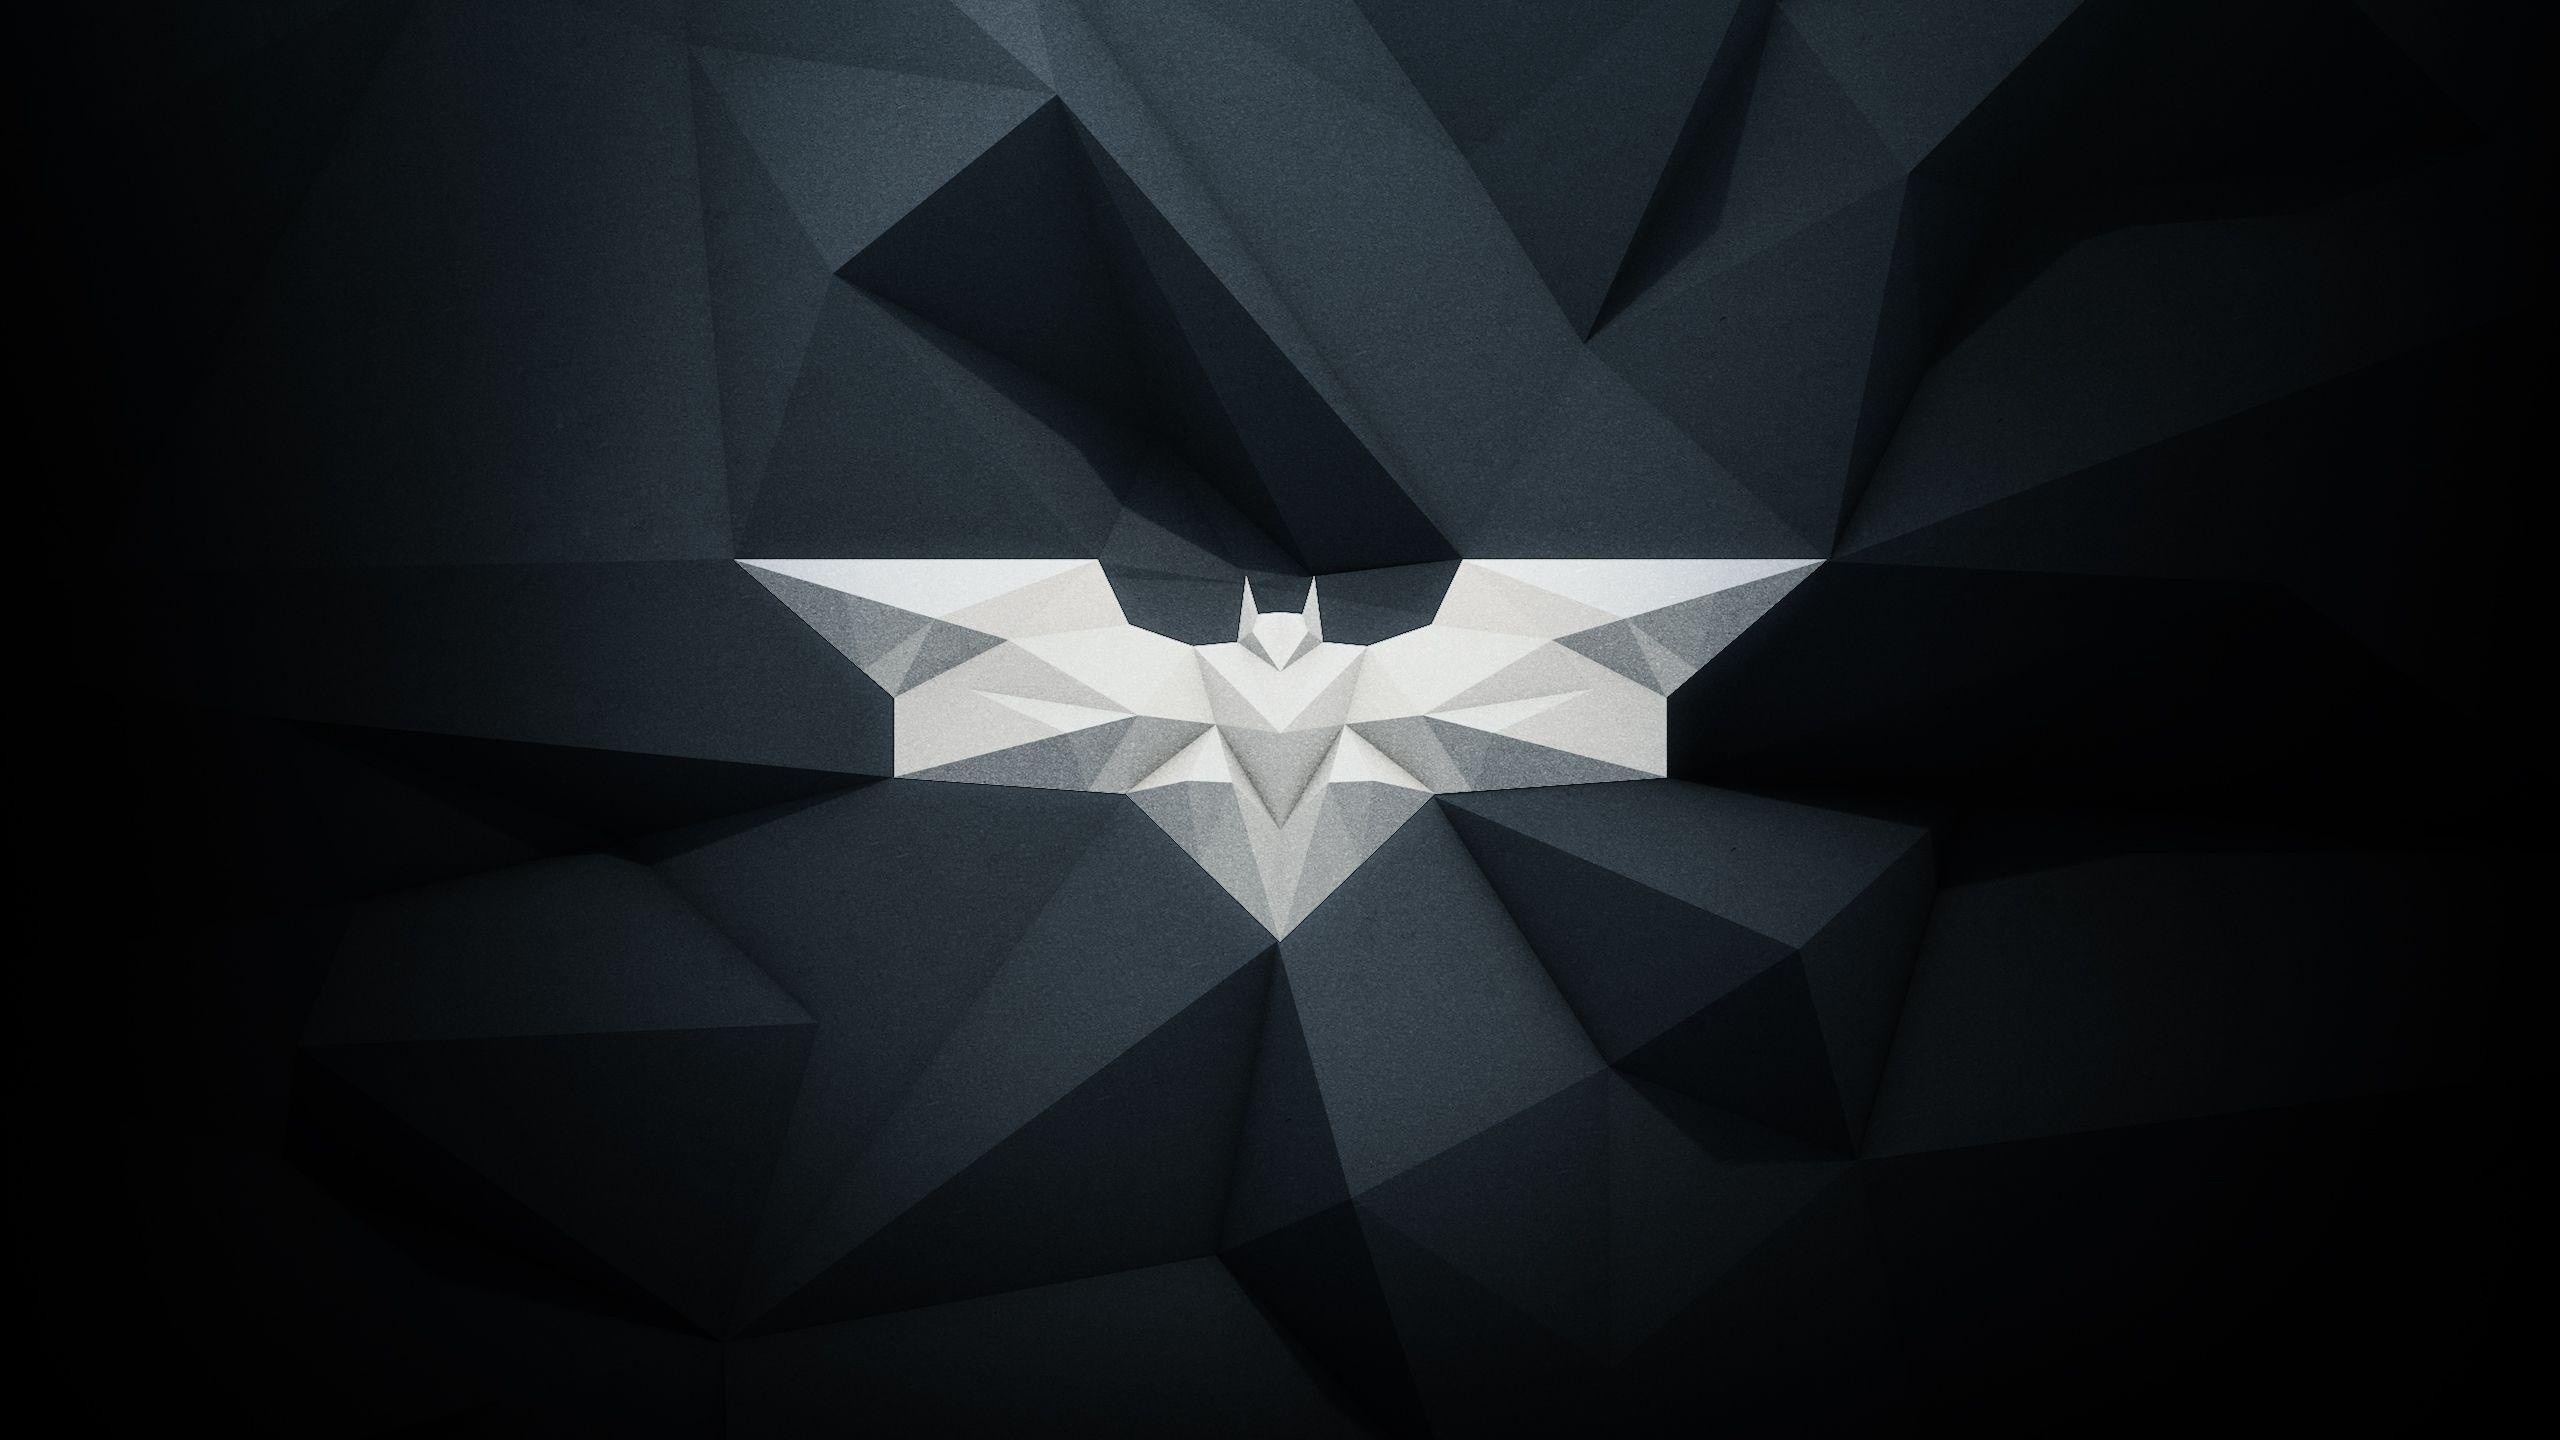 25 Hd Polygon Wallpapers